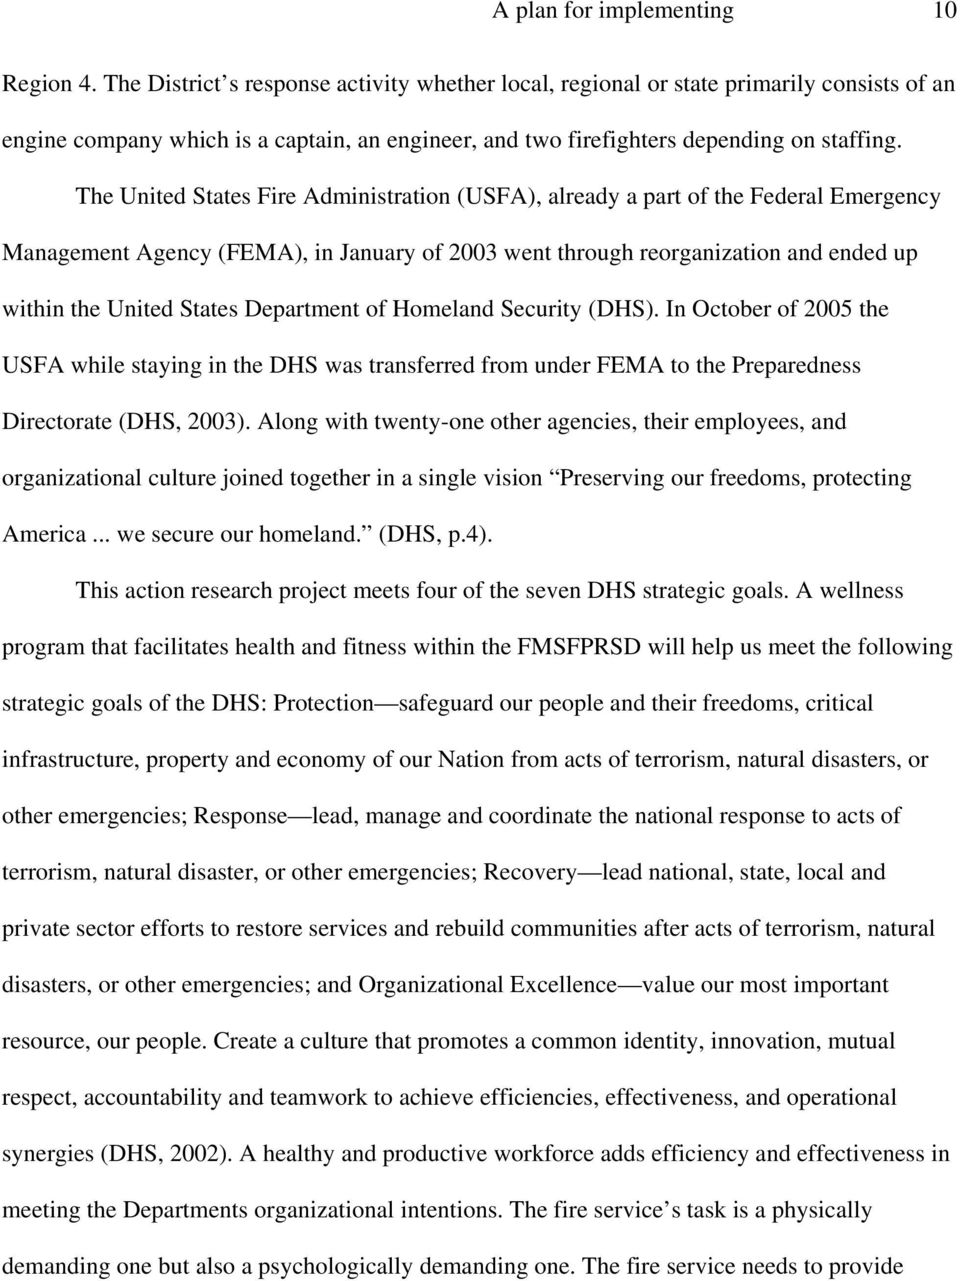 The United States Fire Administration (USFA), already a part of the Federal Emergency Management Agency (FEMA), in January of 2003 went through reorganization and ended up within the United States